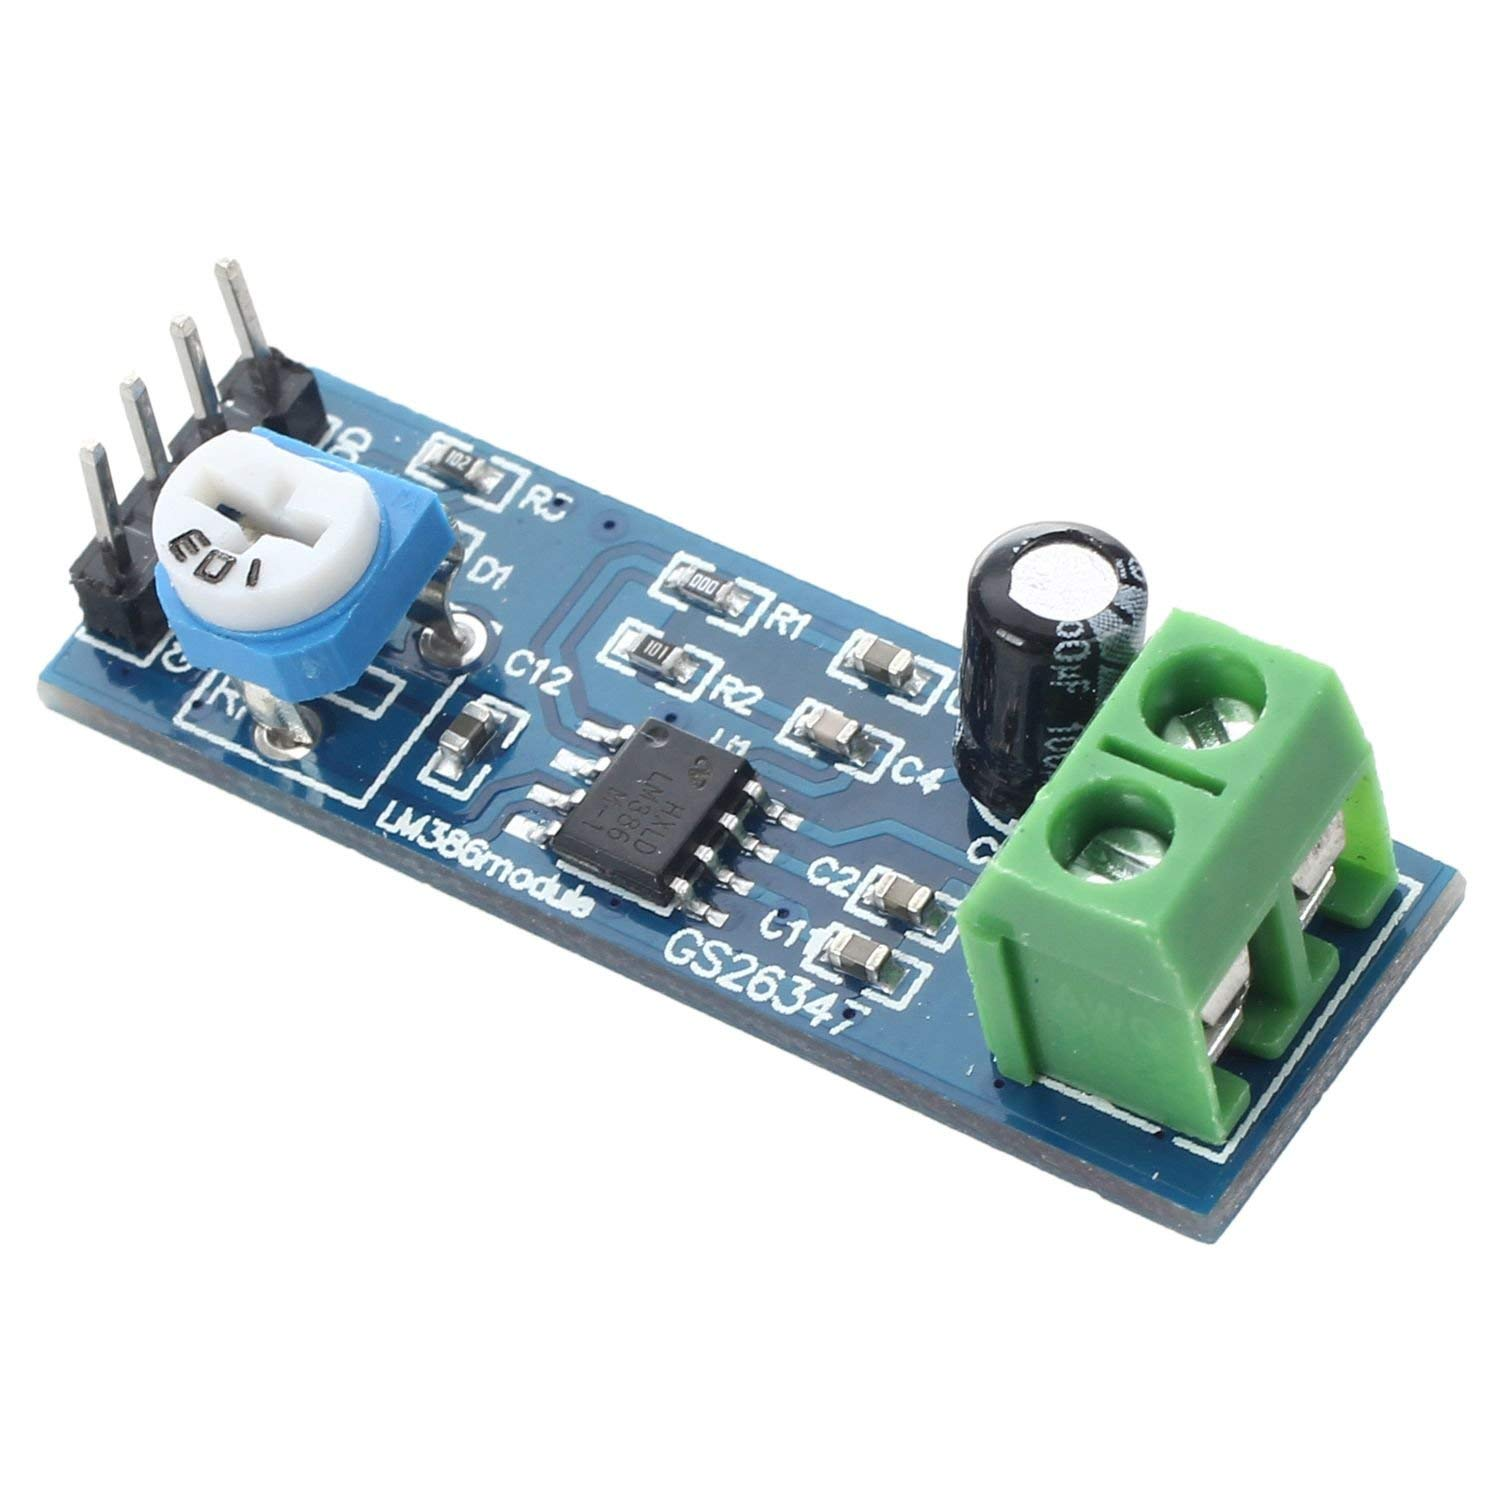 Cheap Lm386 Audio Amplifier Circuit Find Tda7492 Digital Power Board Blue Silver Get Quotations Sodial Module 200 Times 5 12v 10k Adjustable Resistance